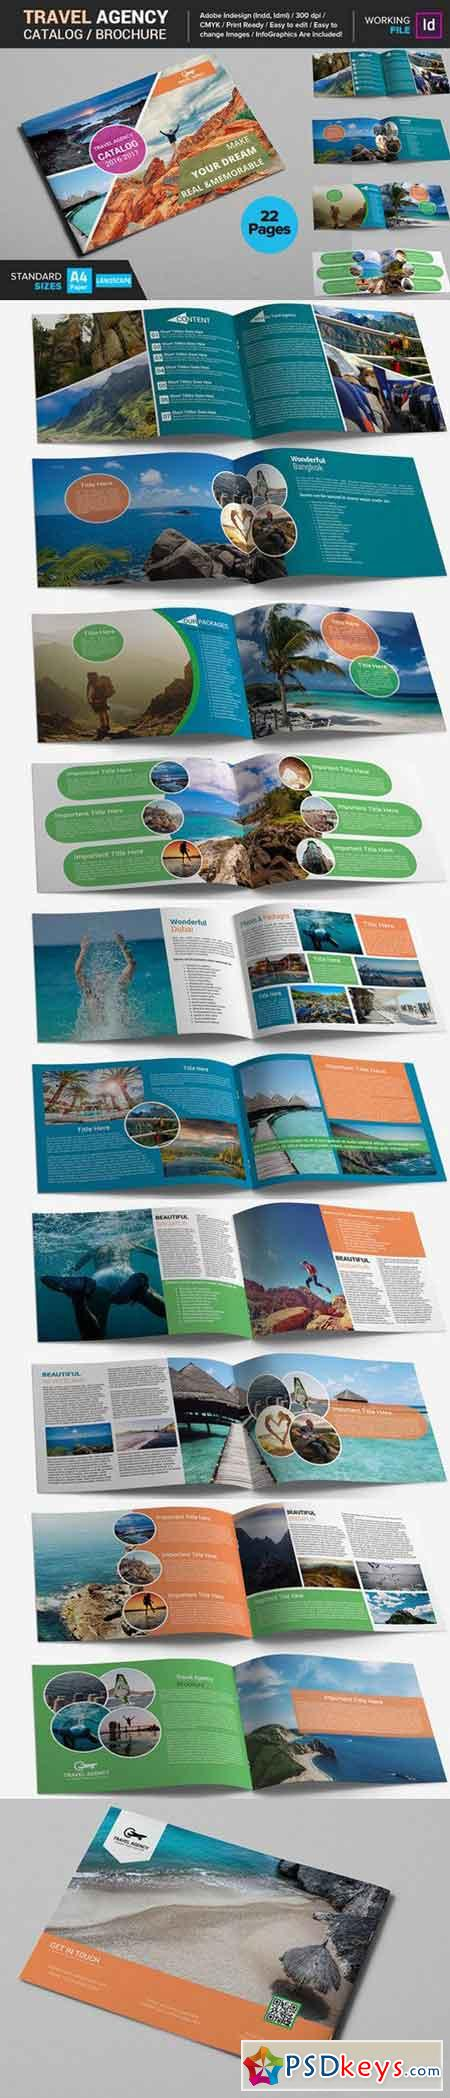 Travel Agency Catalog Brochure 549649